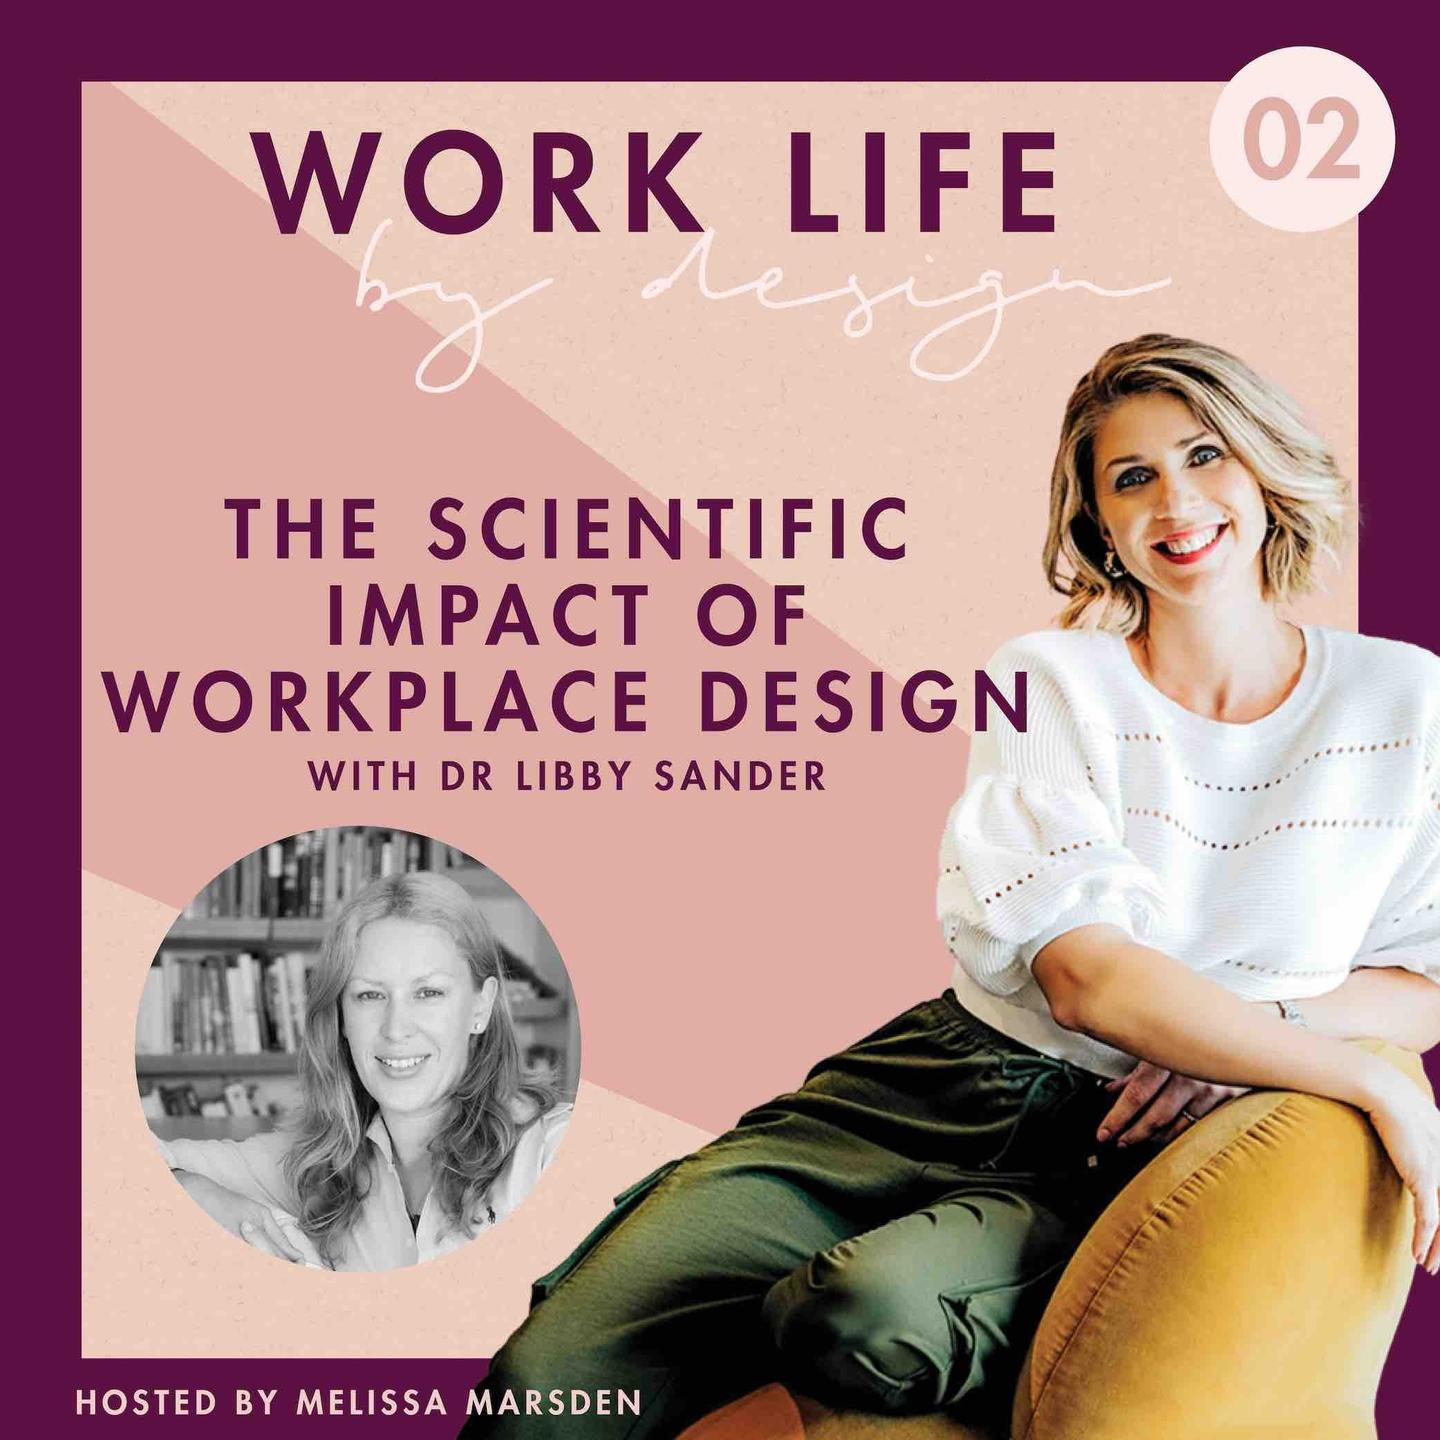 The scientific impact of workplace design with Dr Libby Sander | Work Life By Design Podcast Melissa Marsden